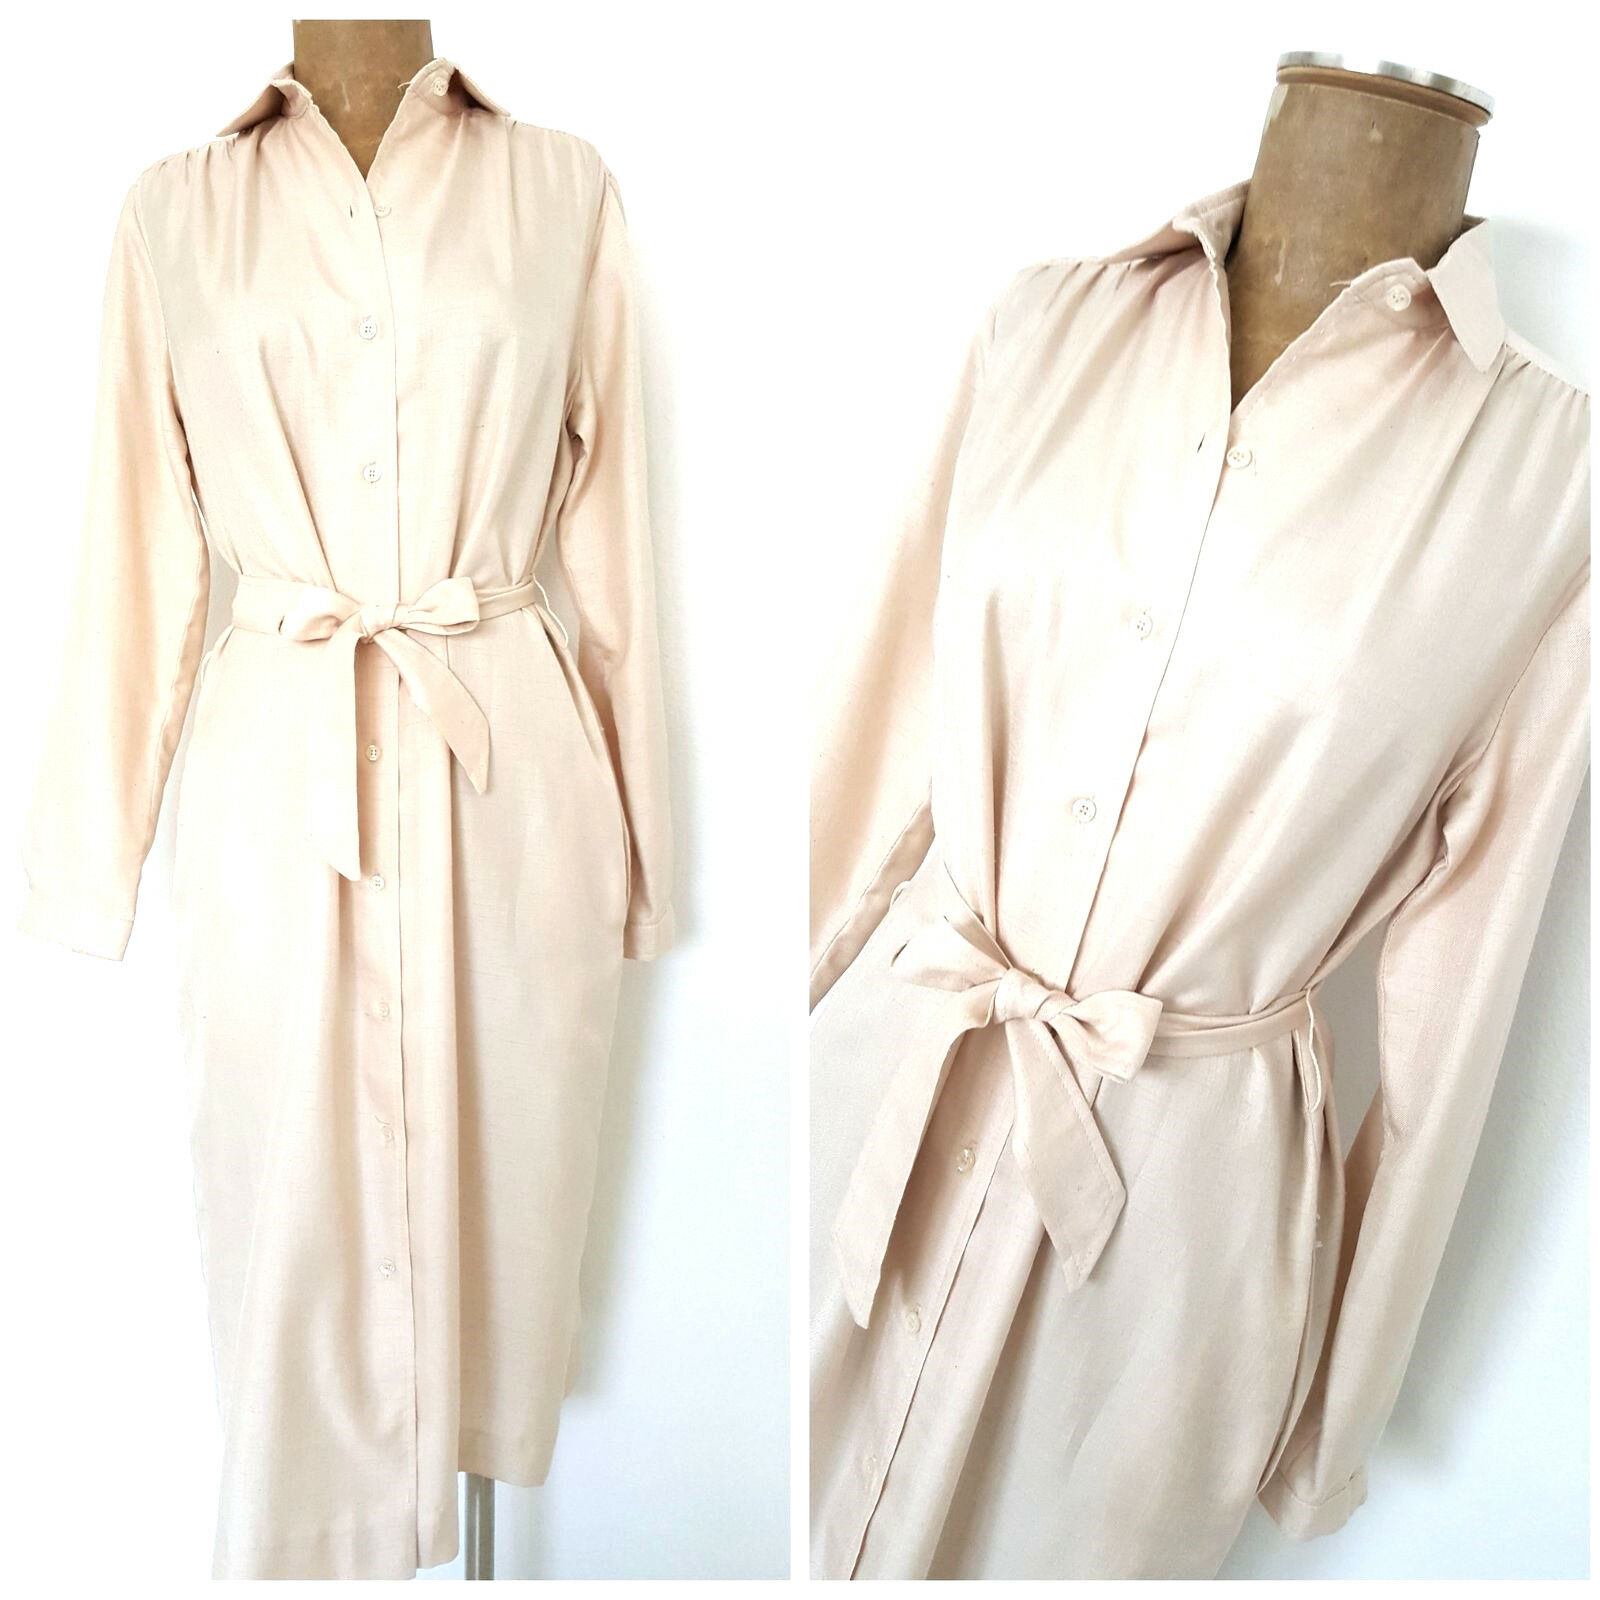 Vintage 70s Clare Joseph Shirt Dress Size Medium Ivory Belted Orvis Button Front